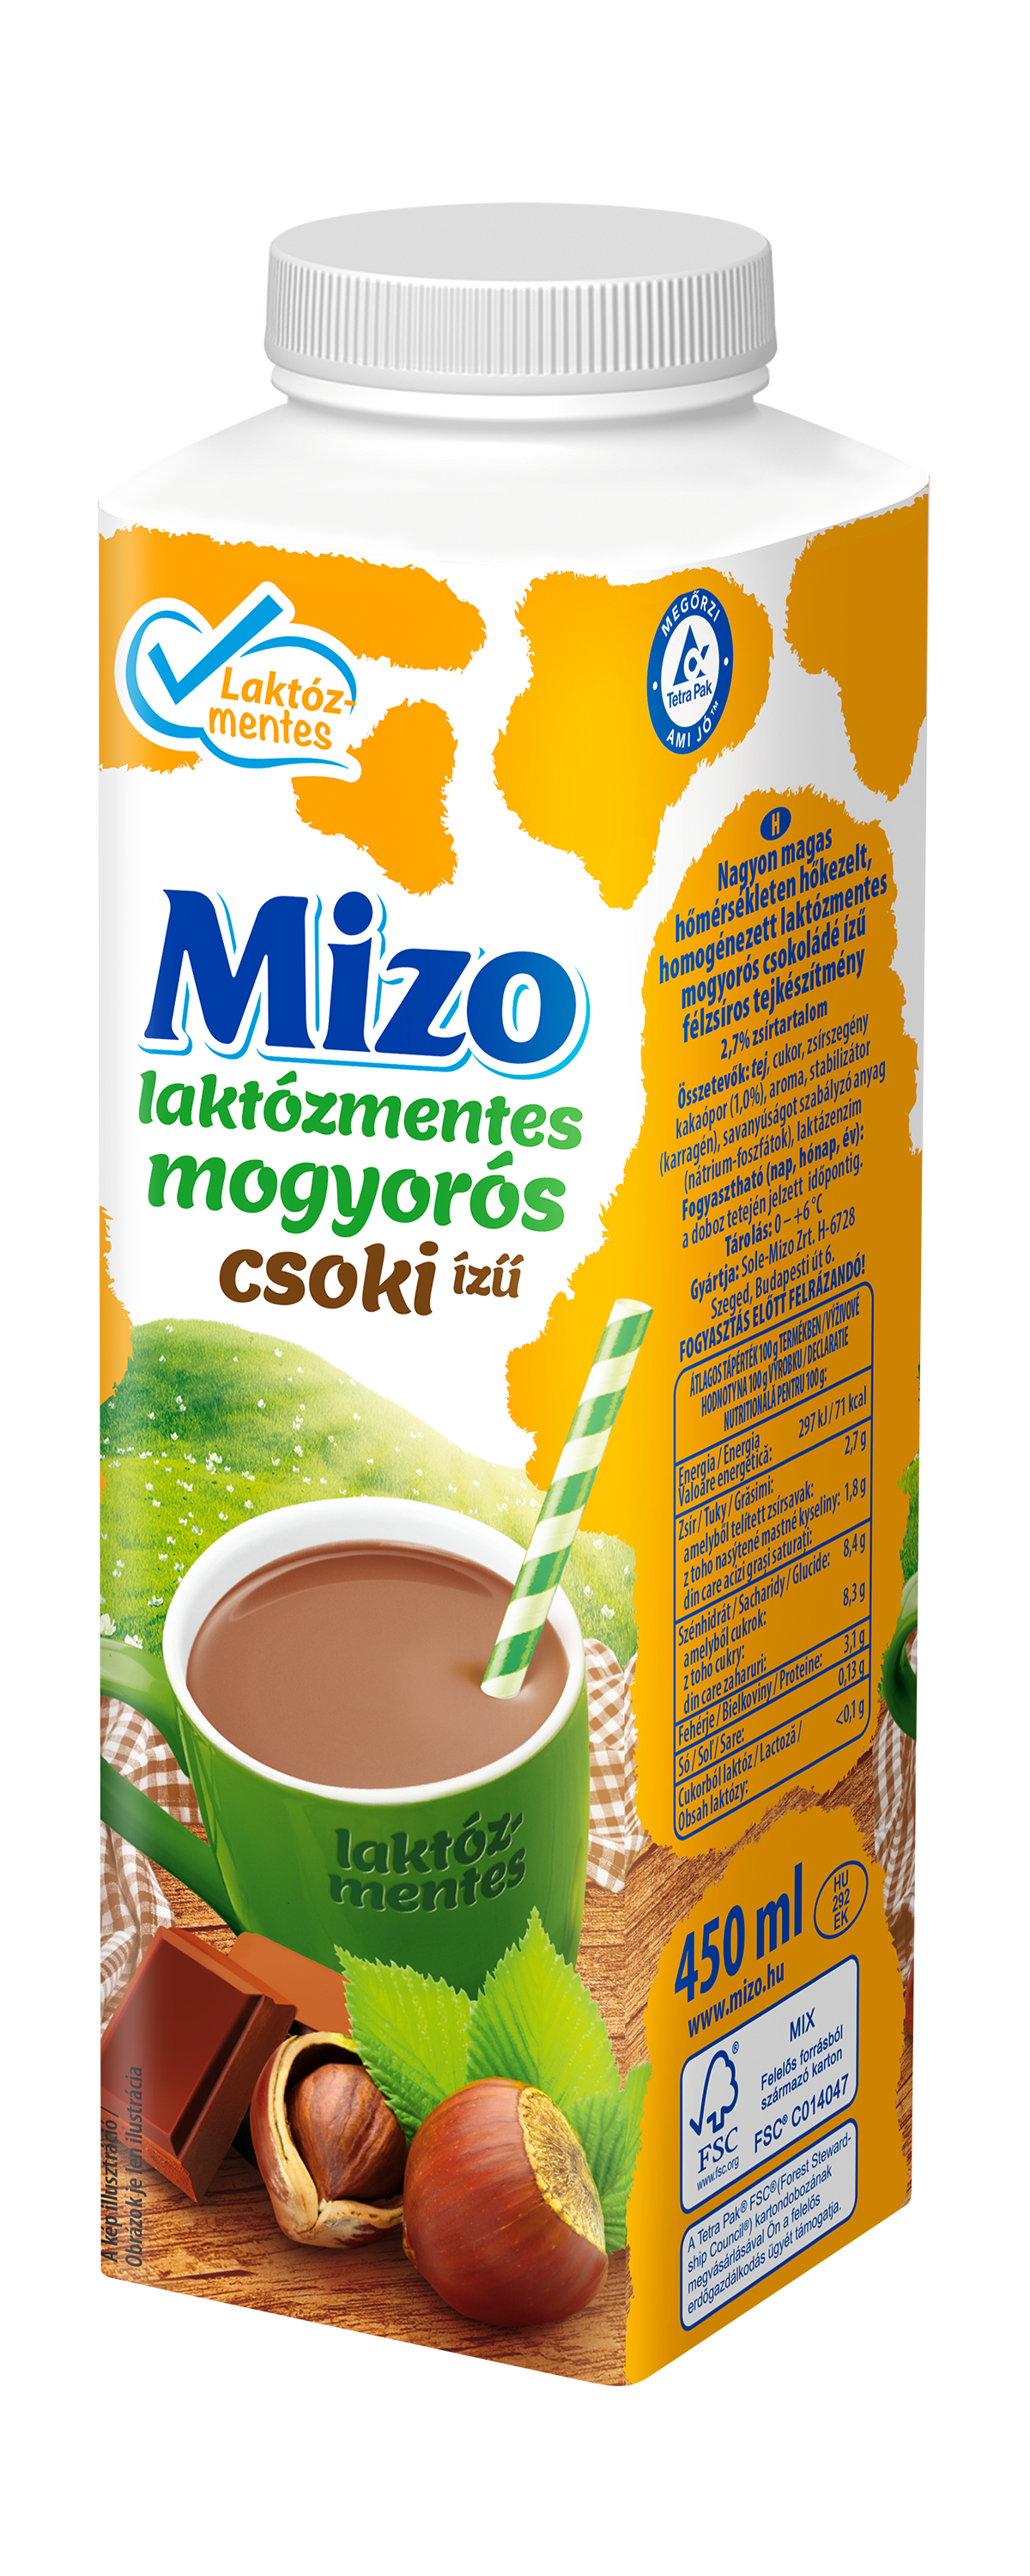 MIZO Top italok 450ml